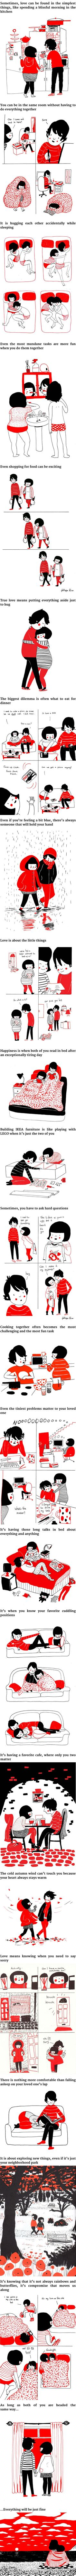 Heartwarming Illustrations Show That Love Is In The Small Things (By Philippa Rice)